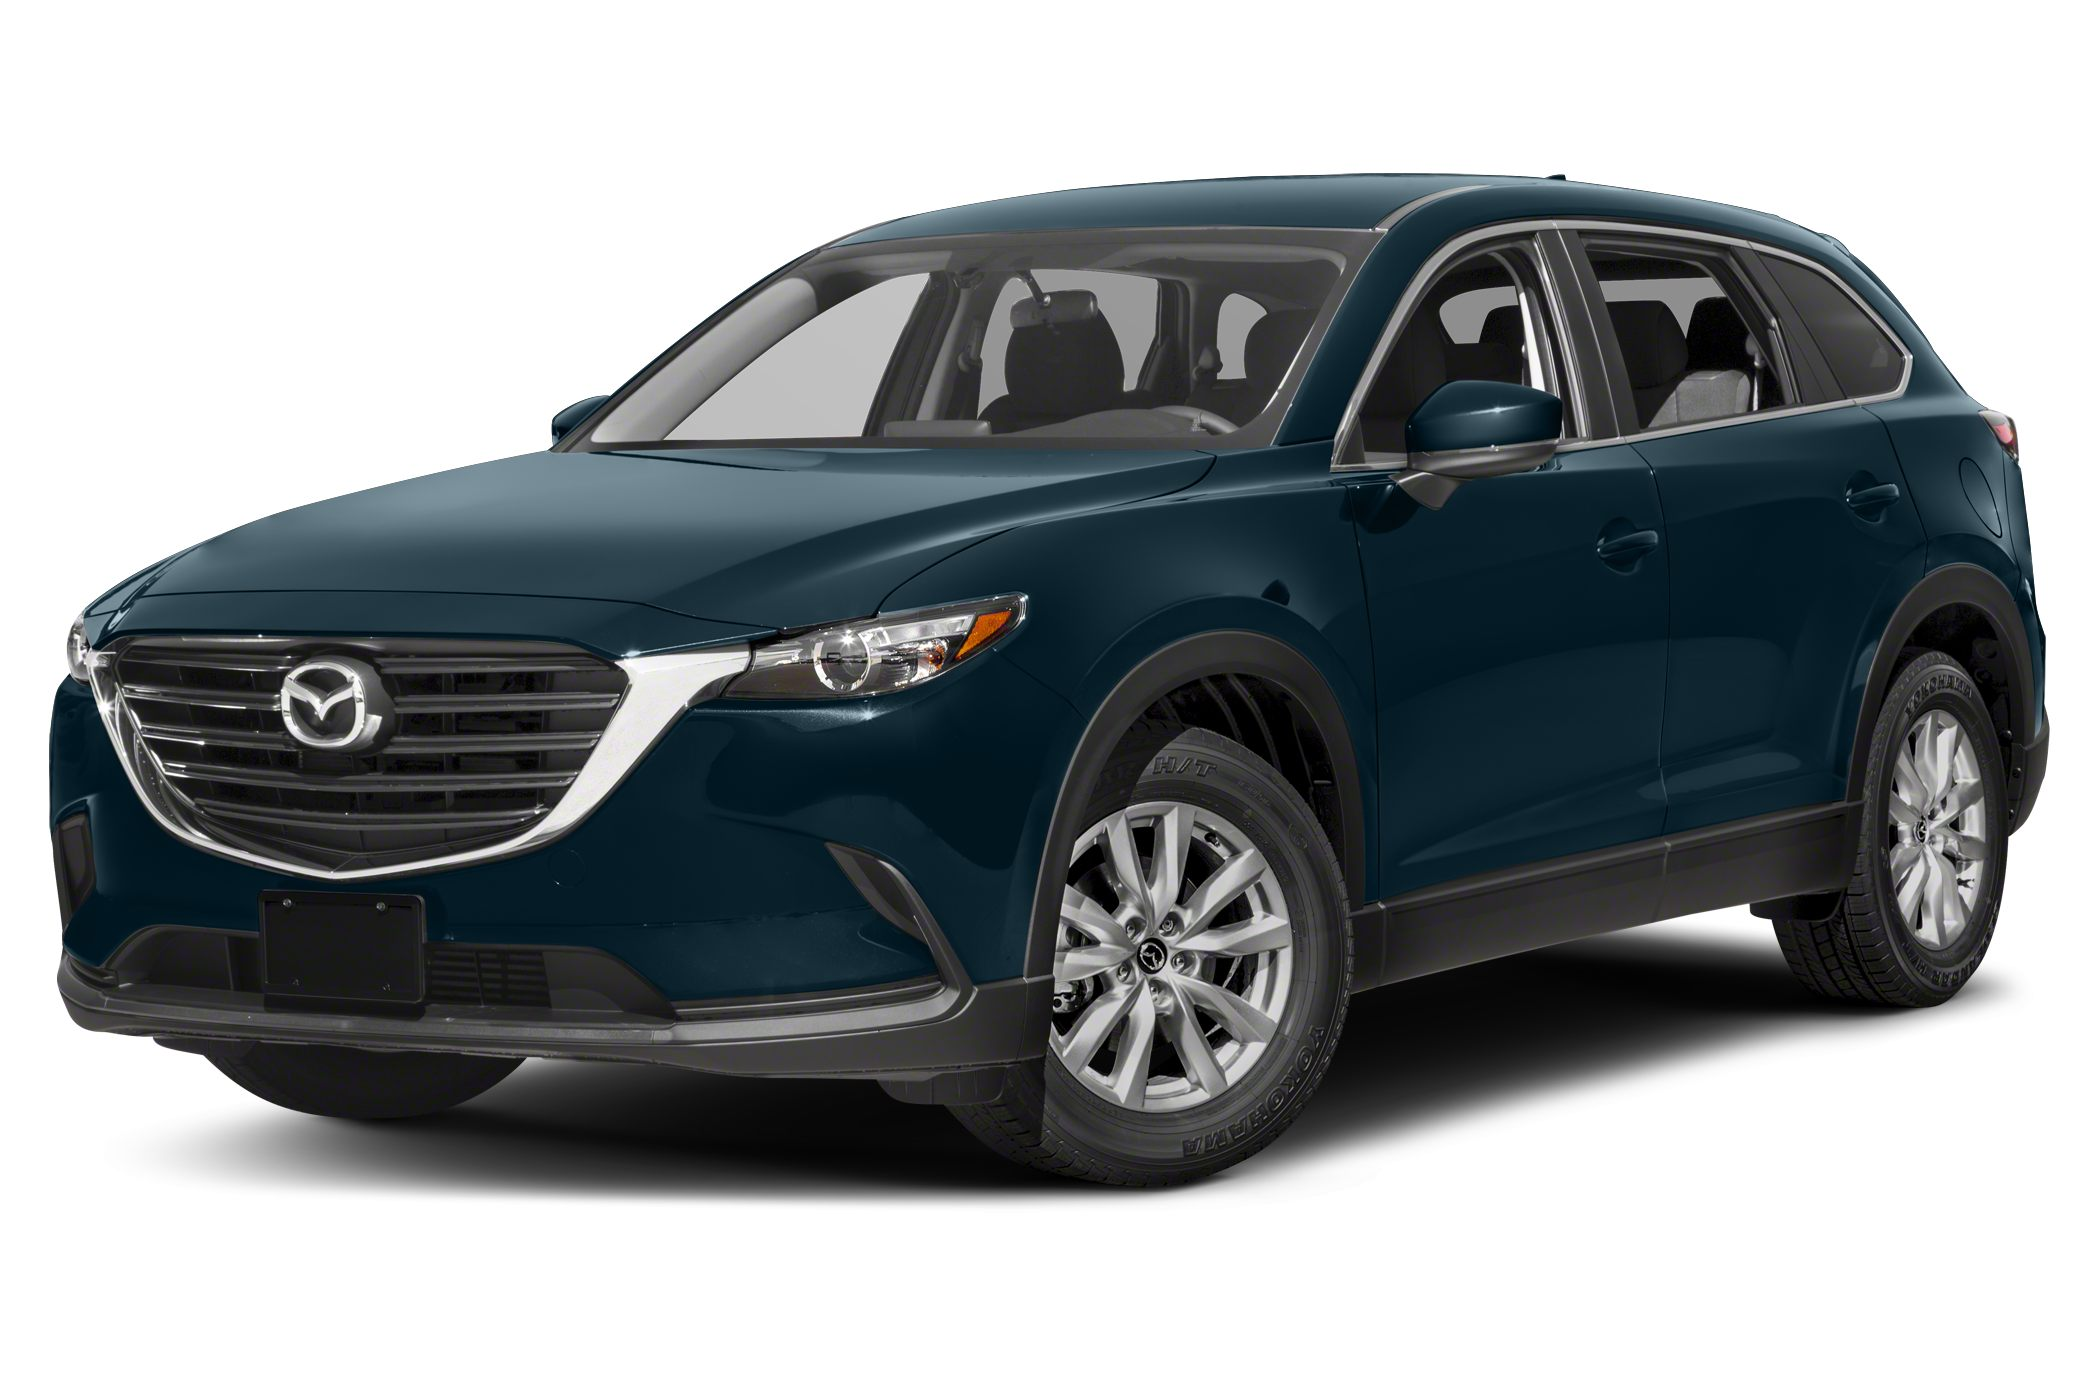 Mazda Cx 9 News Photos And Buying Information Autoblog